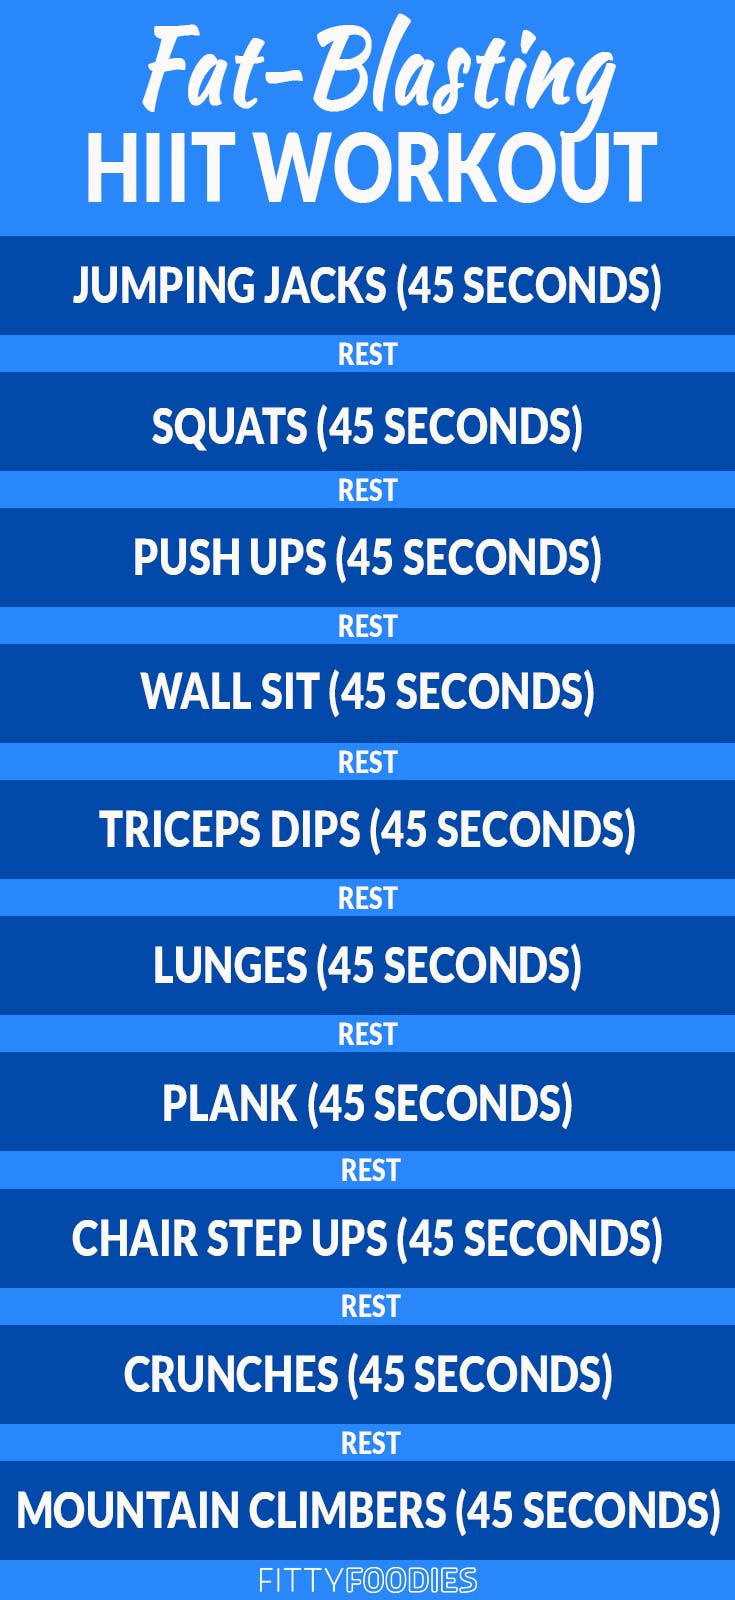 10 Minute Fat Burning Workout  10 Minute Fat Burning HIIT Workout FittyFoo s